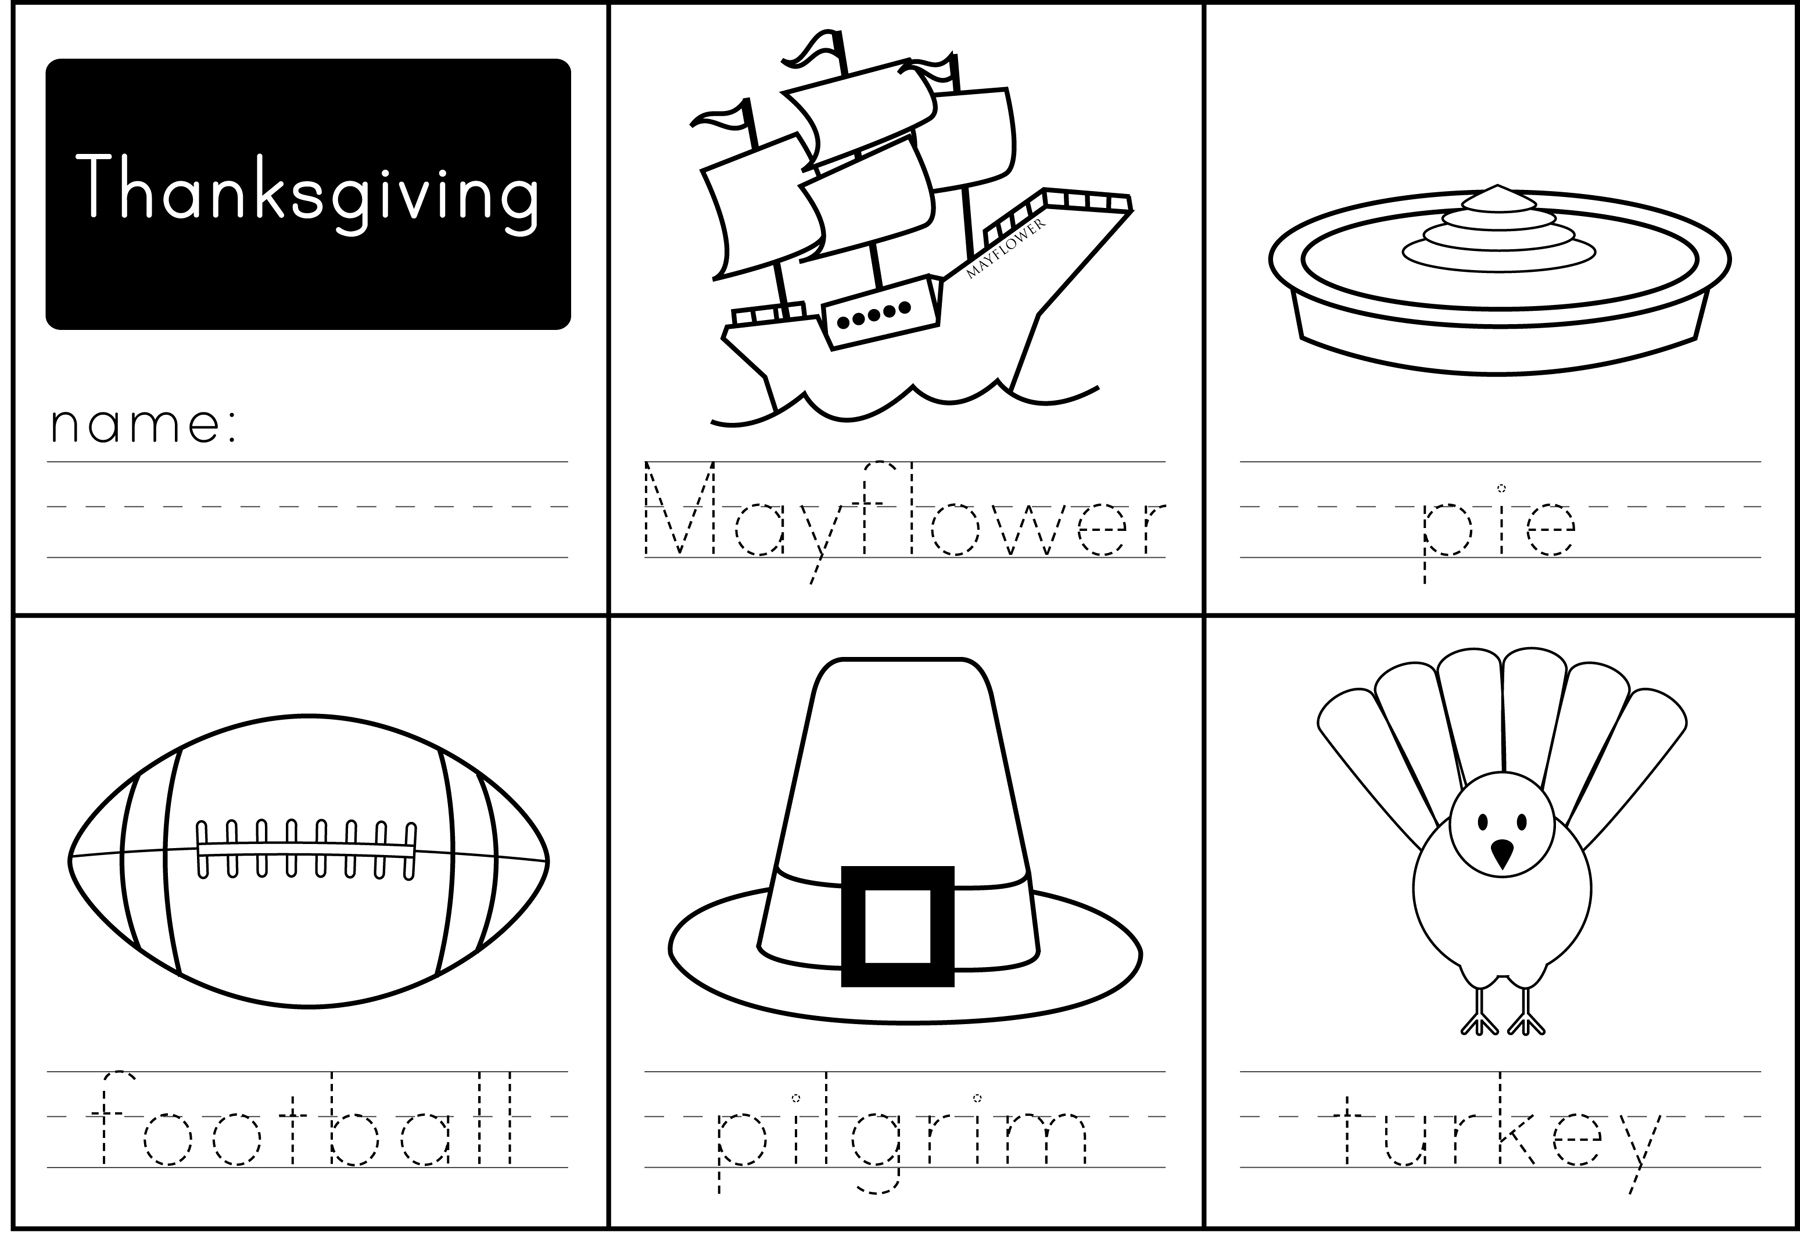 Thanksgiving Activities - Paging Supermom - Free Printable Kindergarten Thanksgiving Activities